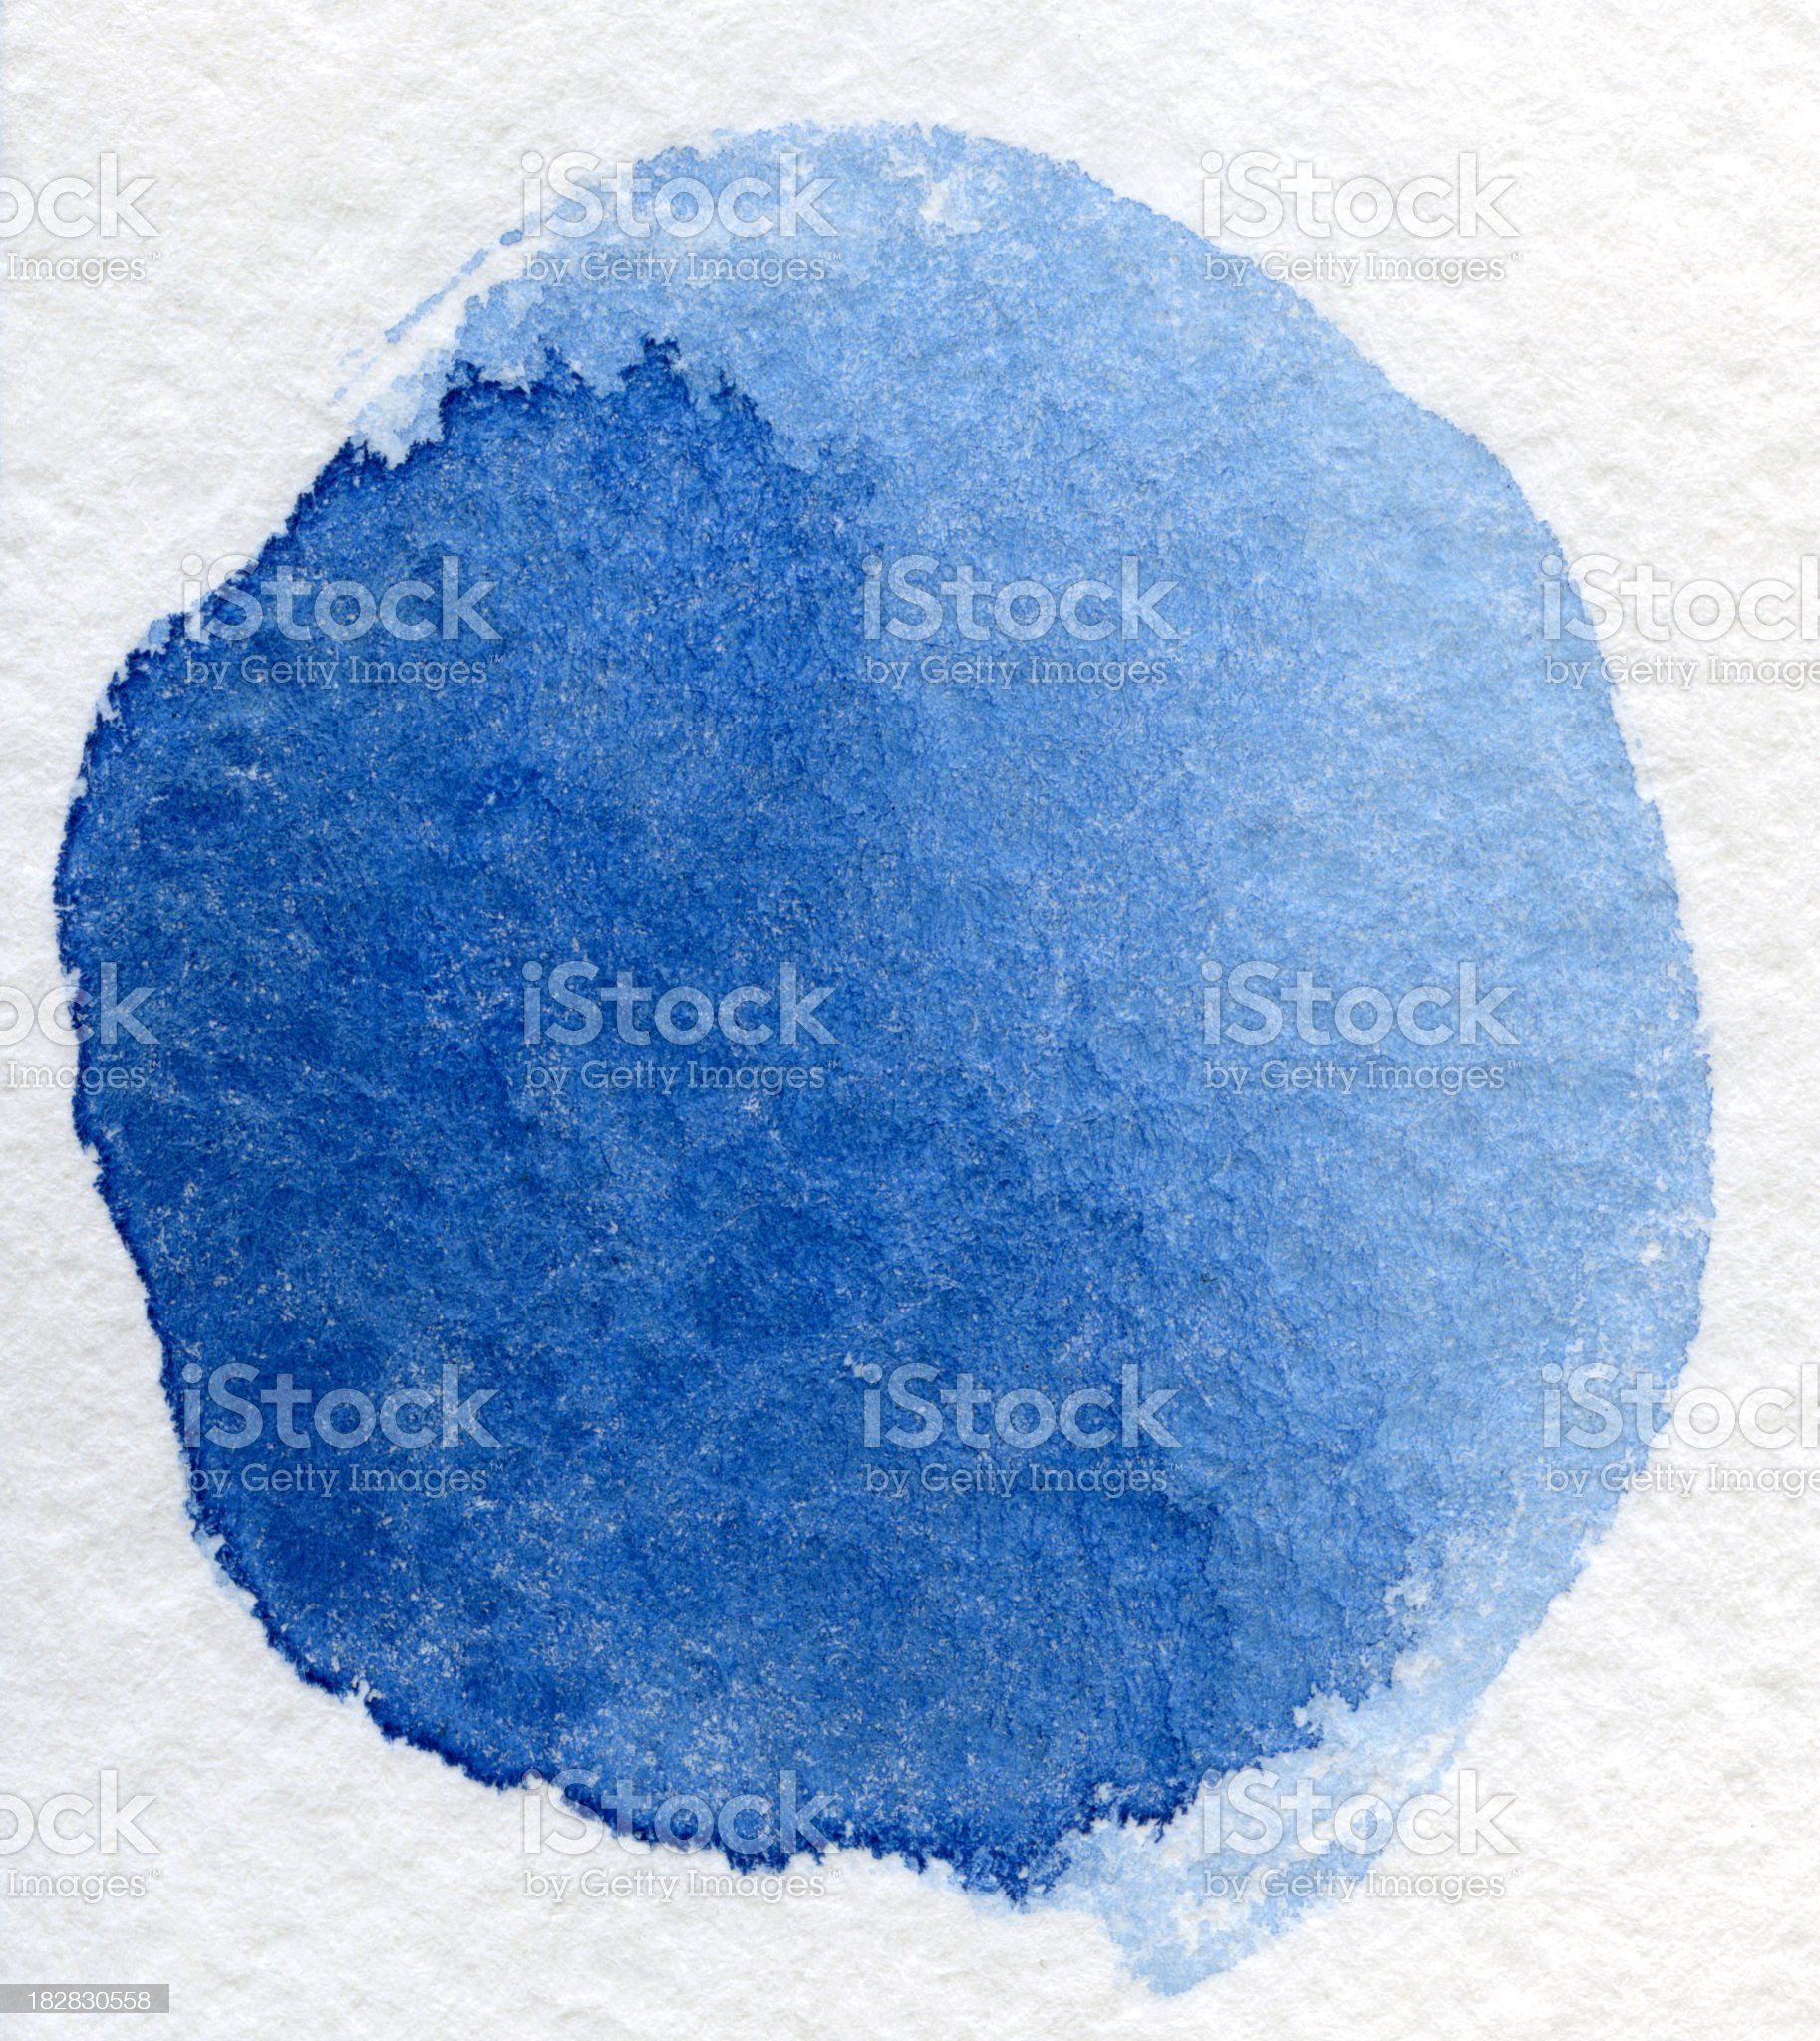 Blue watercolor textured background royalty-free stock photo